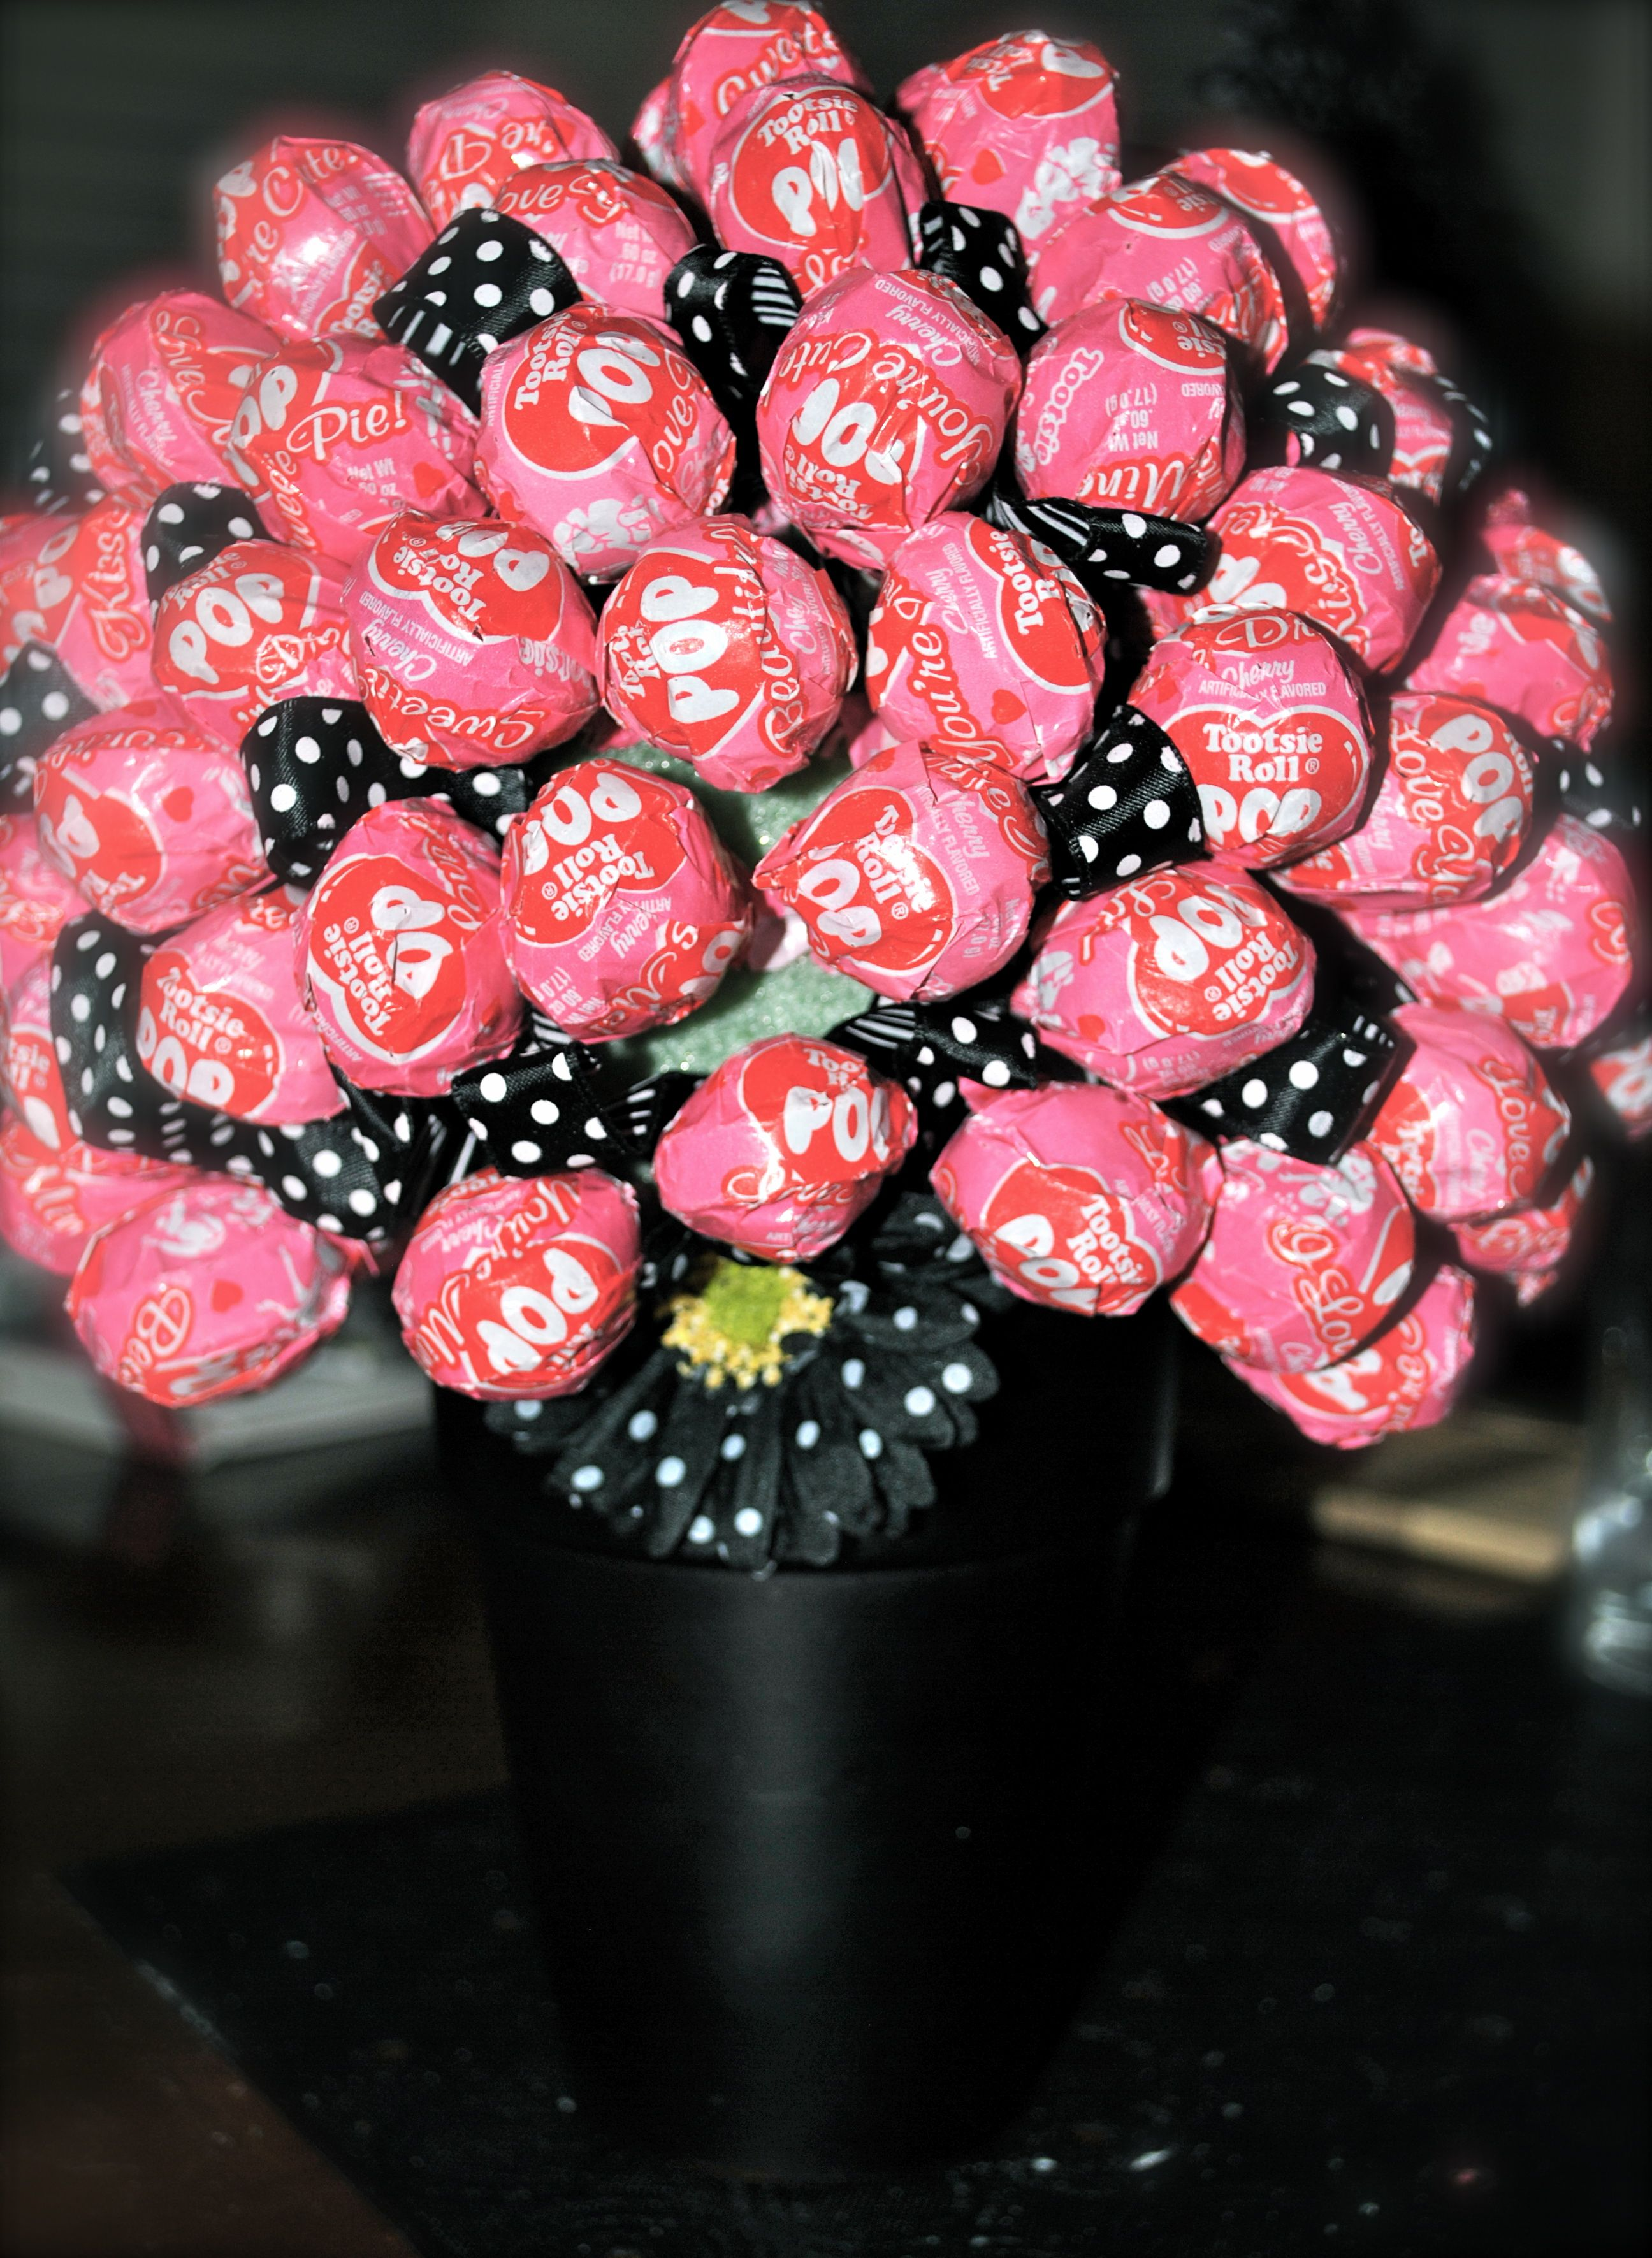 Minnie Mouse Baby Shower Decorations Day 58 Get Crafty Minnie Mouse Table Decor Treat Favors Diy